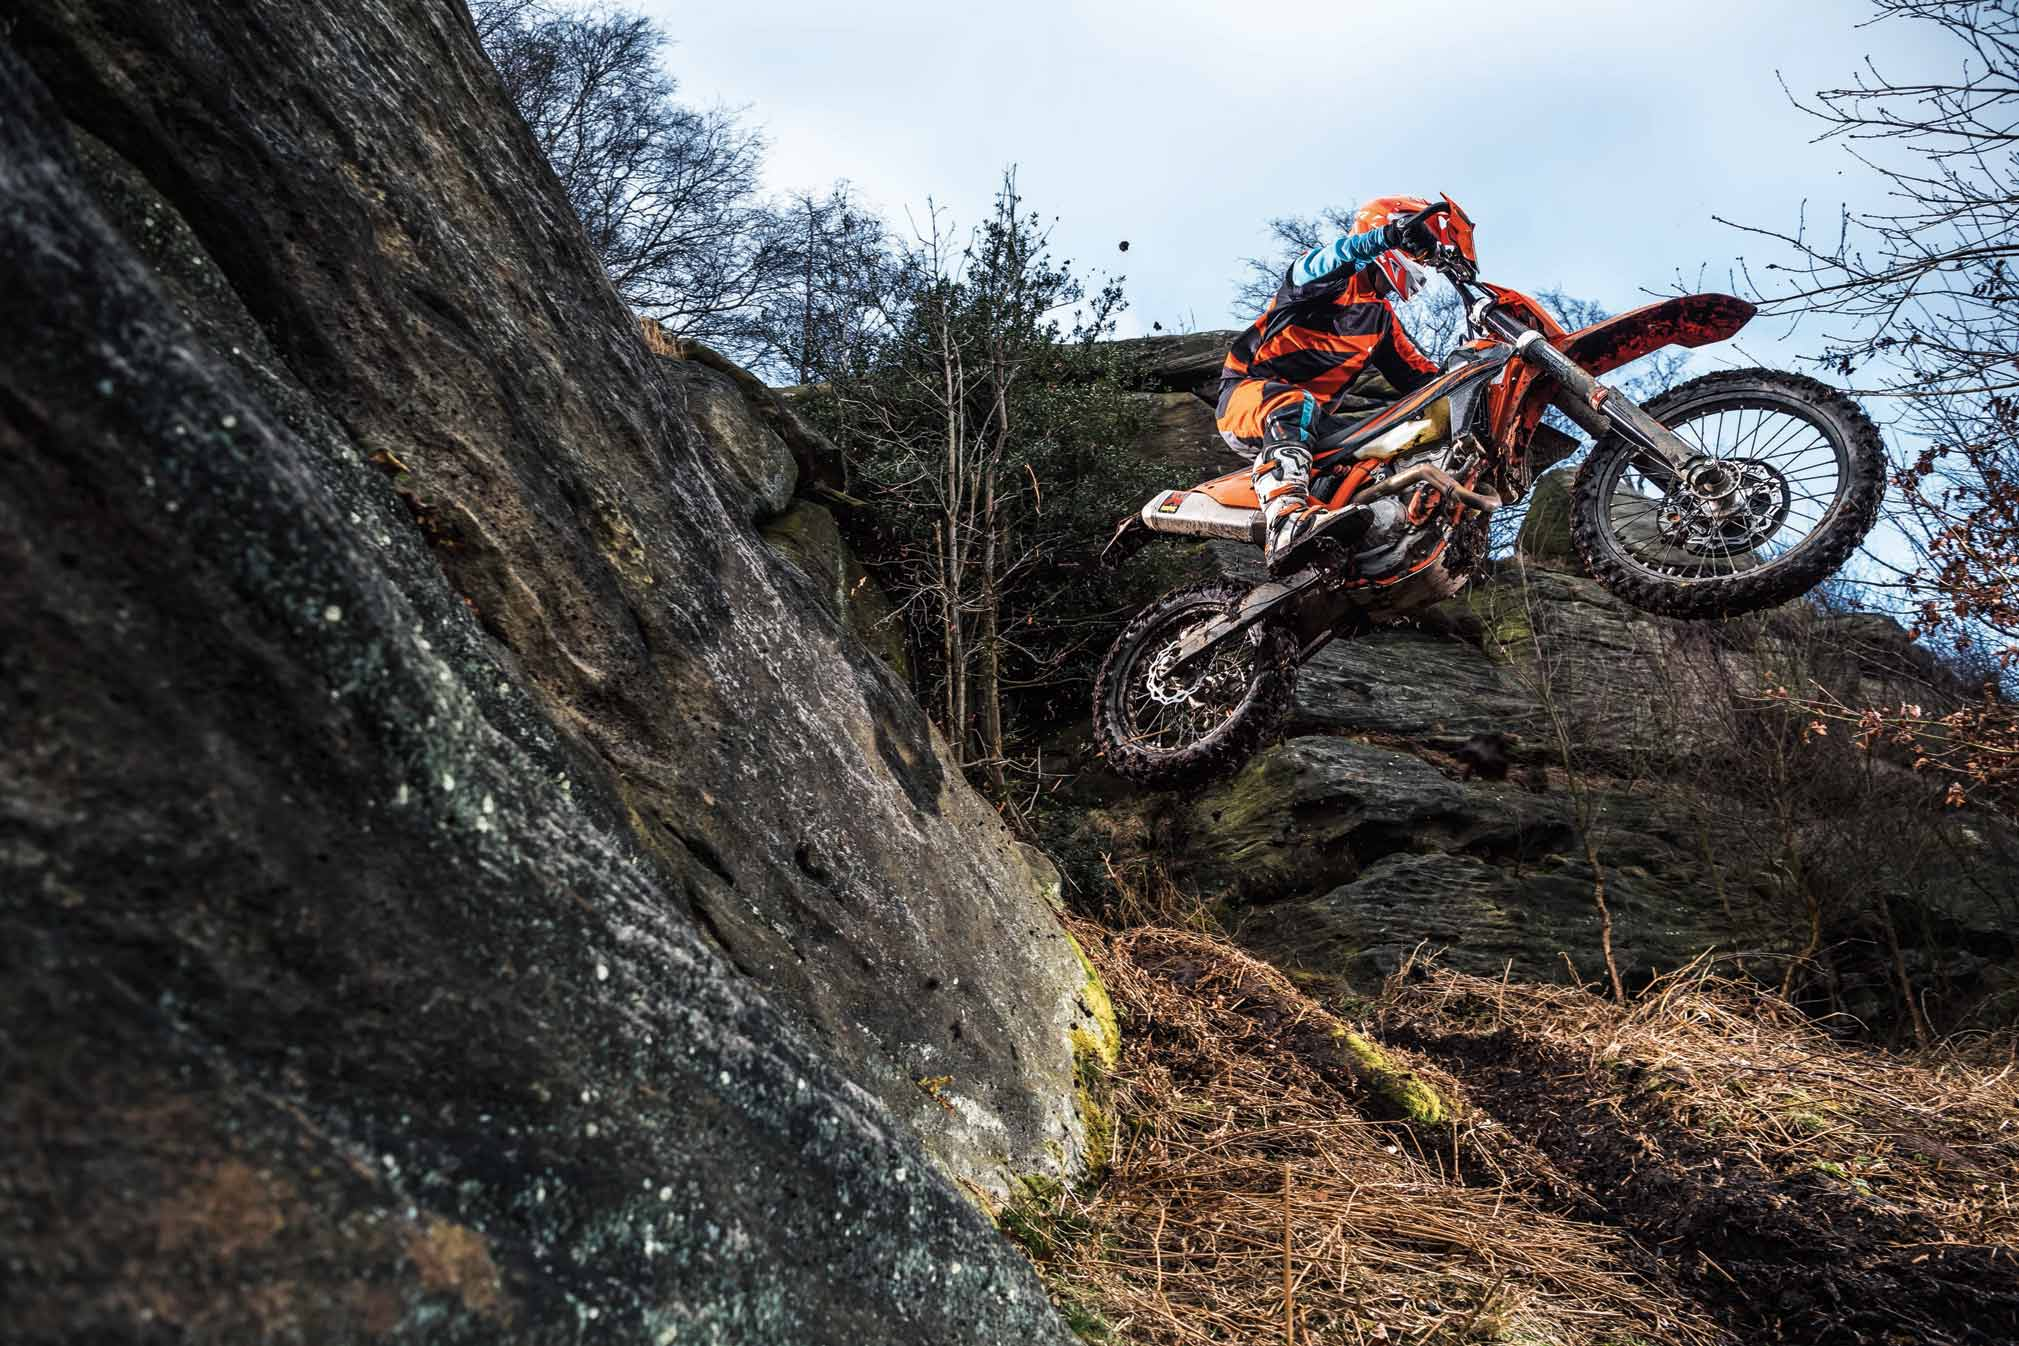 2019 KTM 350 EXC-F Guide • Total Motorcycle